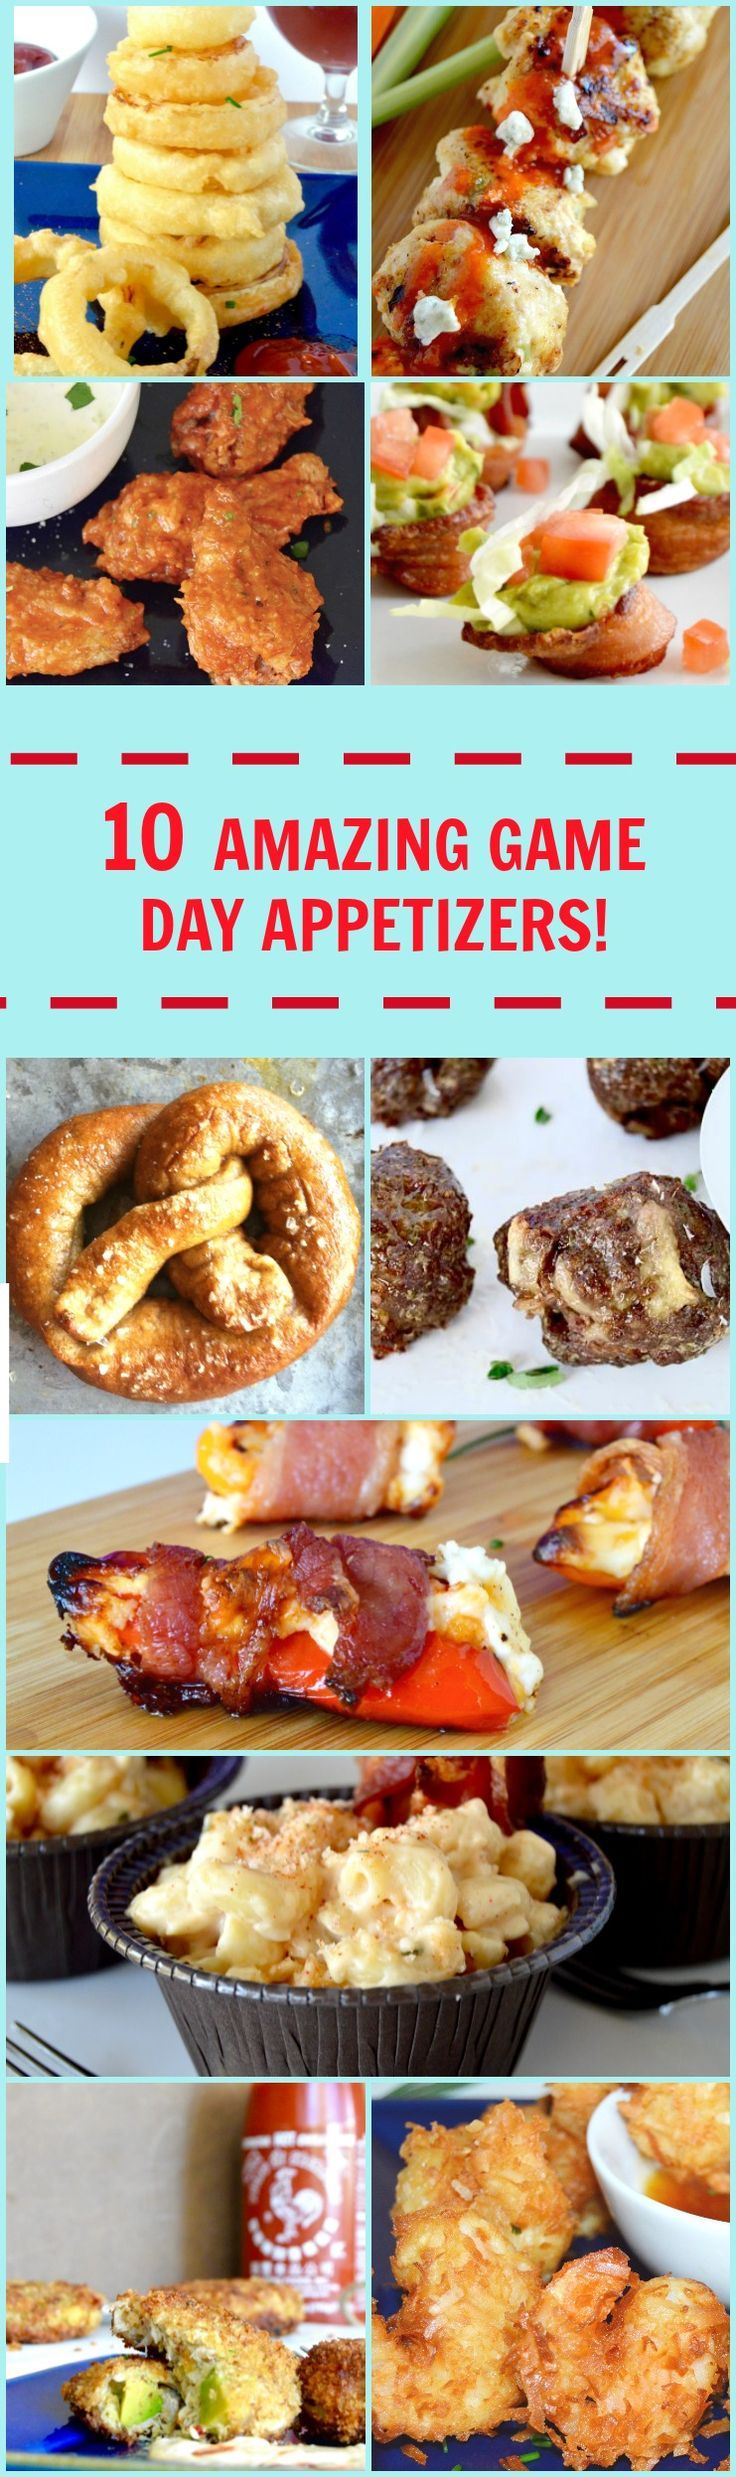 10 Amazing Game Day Appetizers!